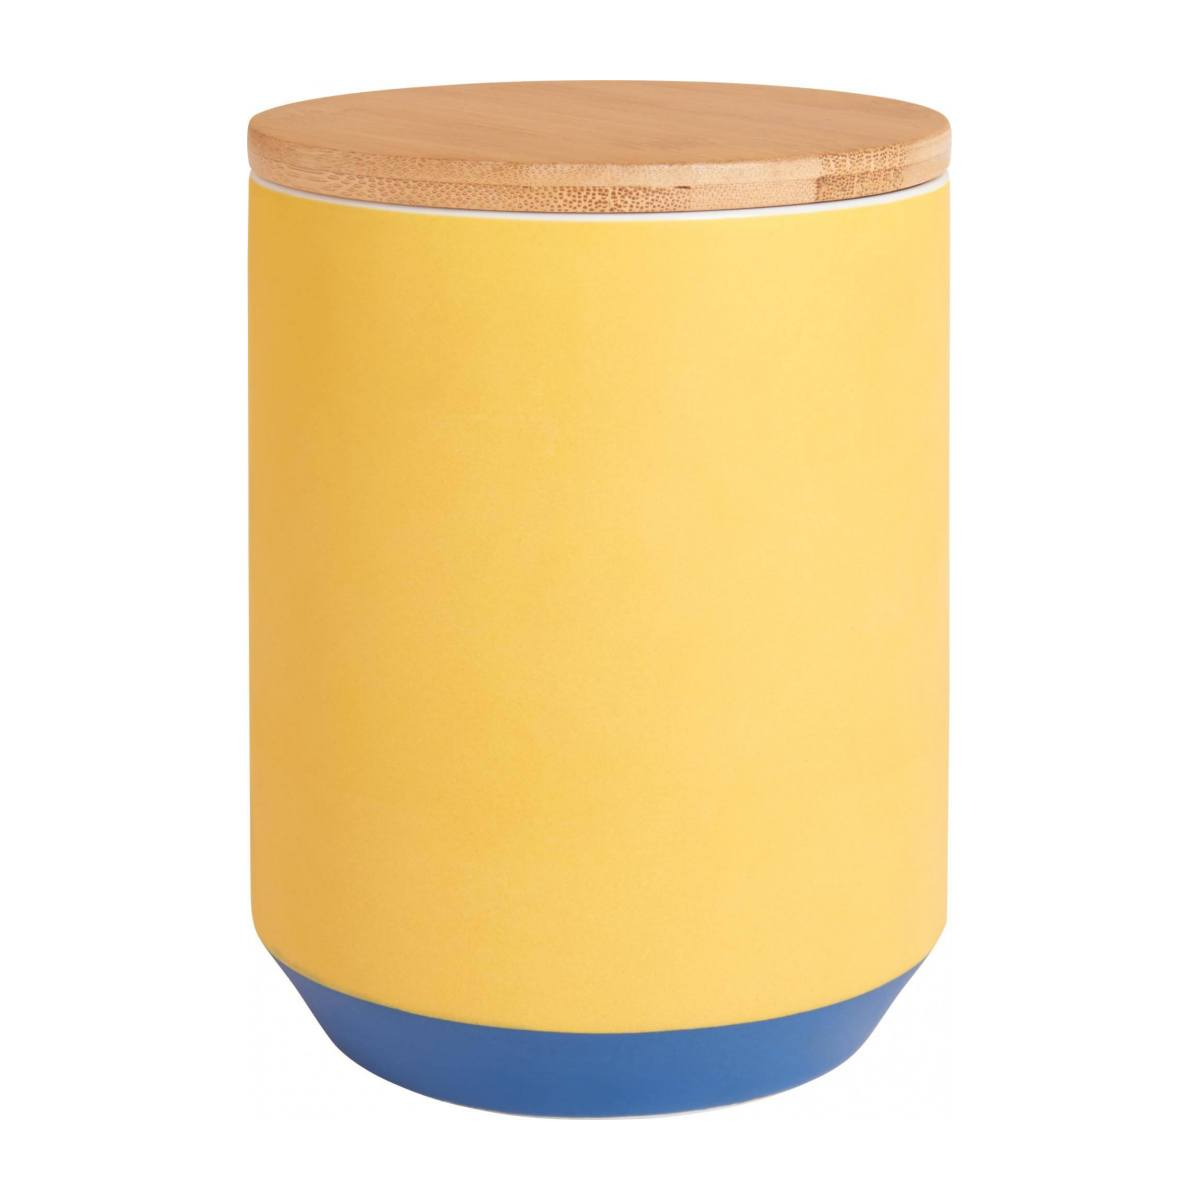 Box made of porcelain and bamboo 16cm, yellow n°1